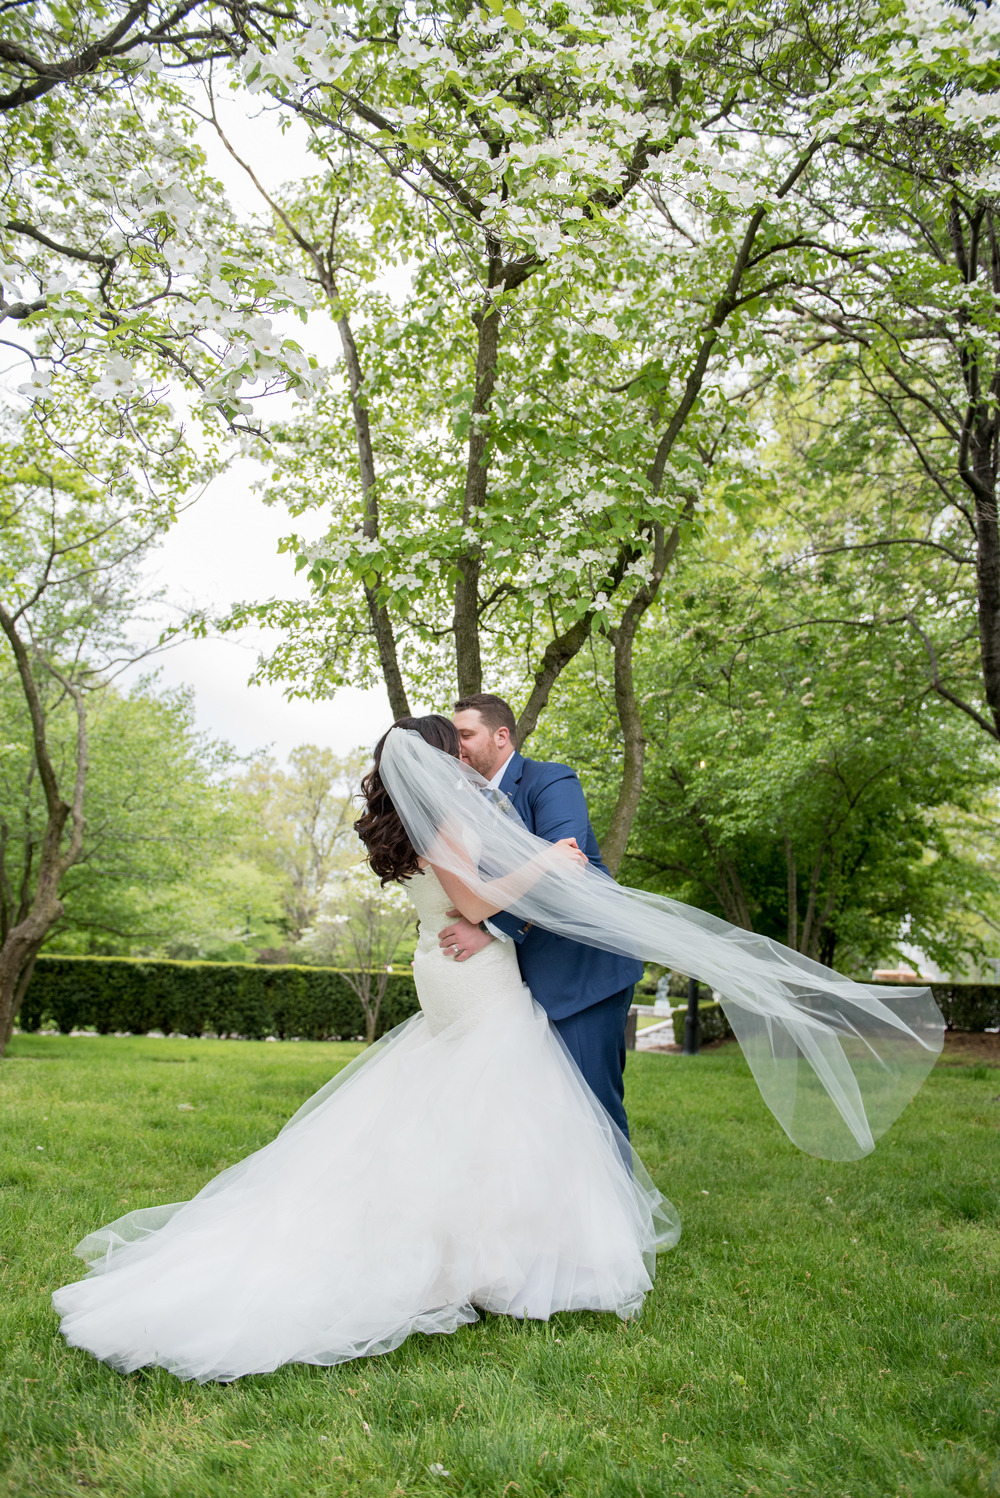 whitney_zunic_ohio_wedding_engagement_photography_035.jpg